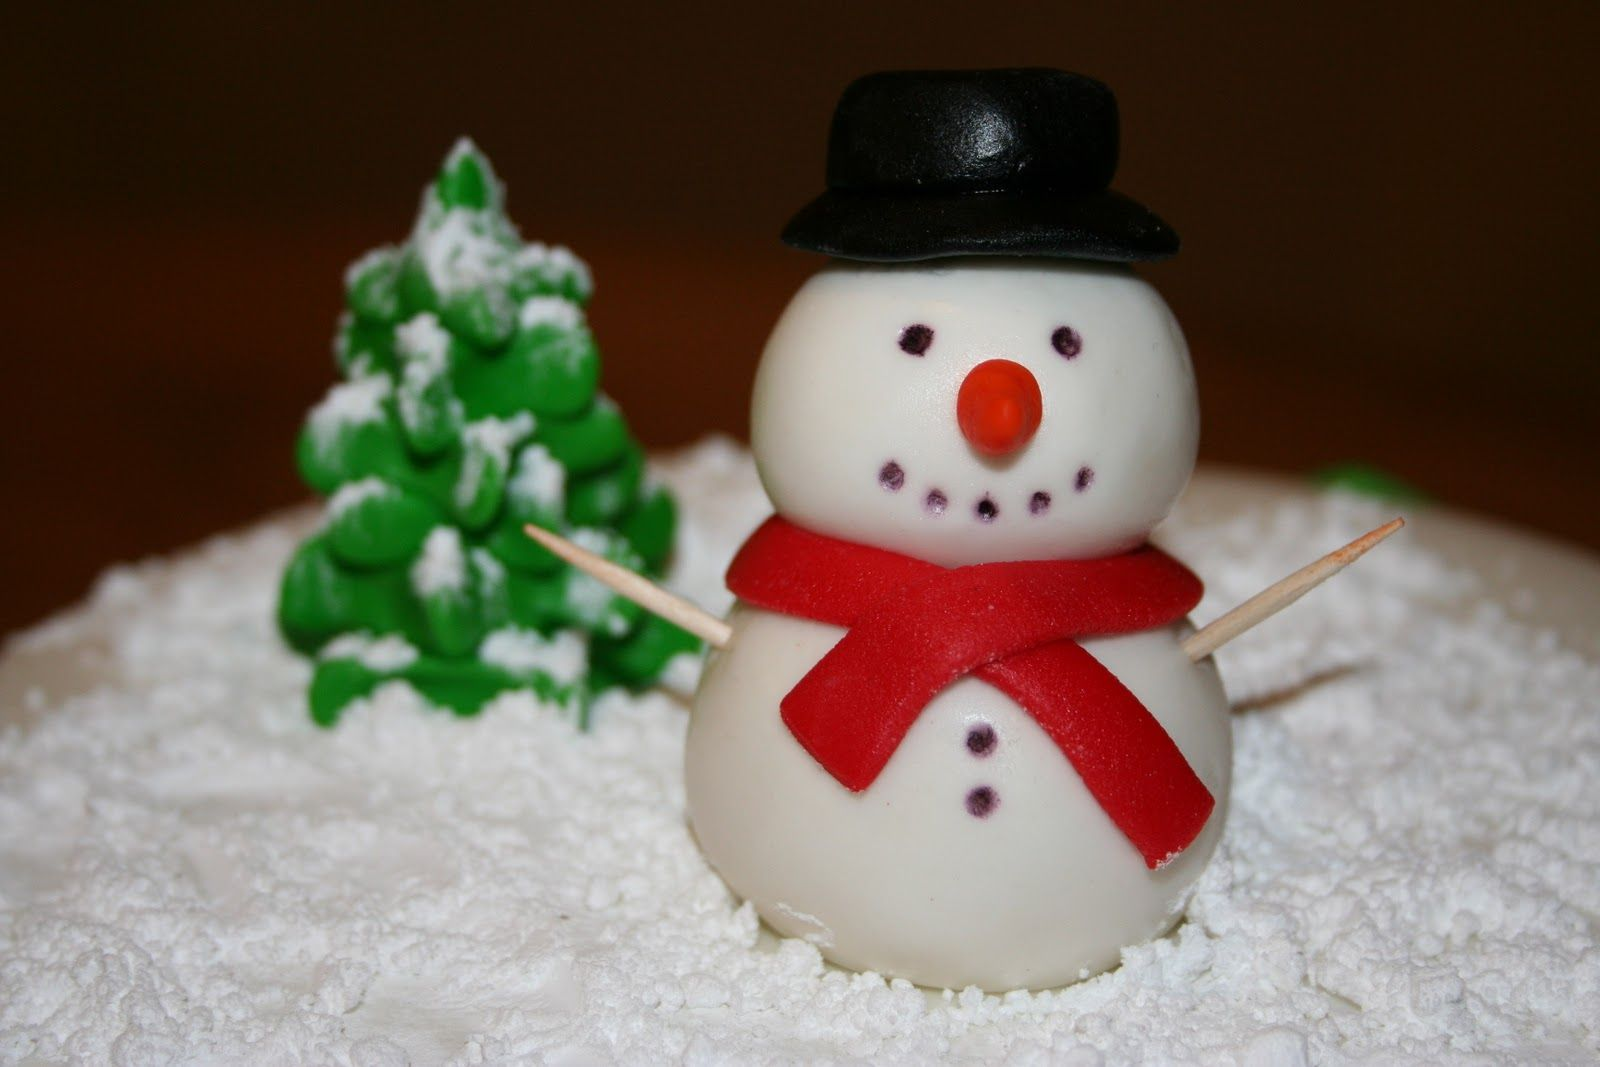 how to make fondant snowman | How To Make A Fondant Olaf The Snowman ...